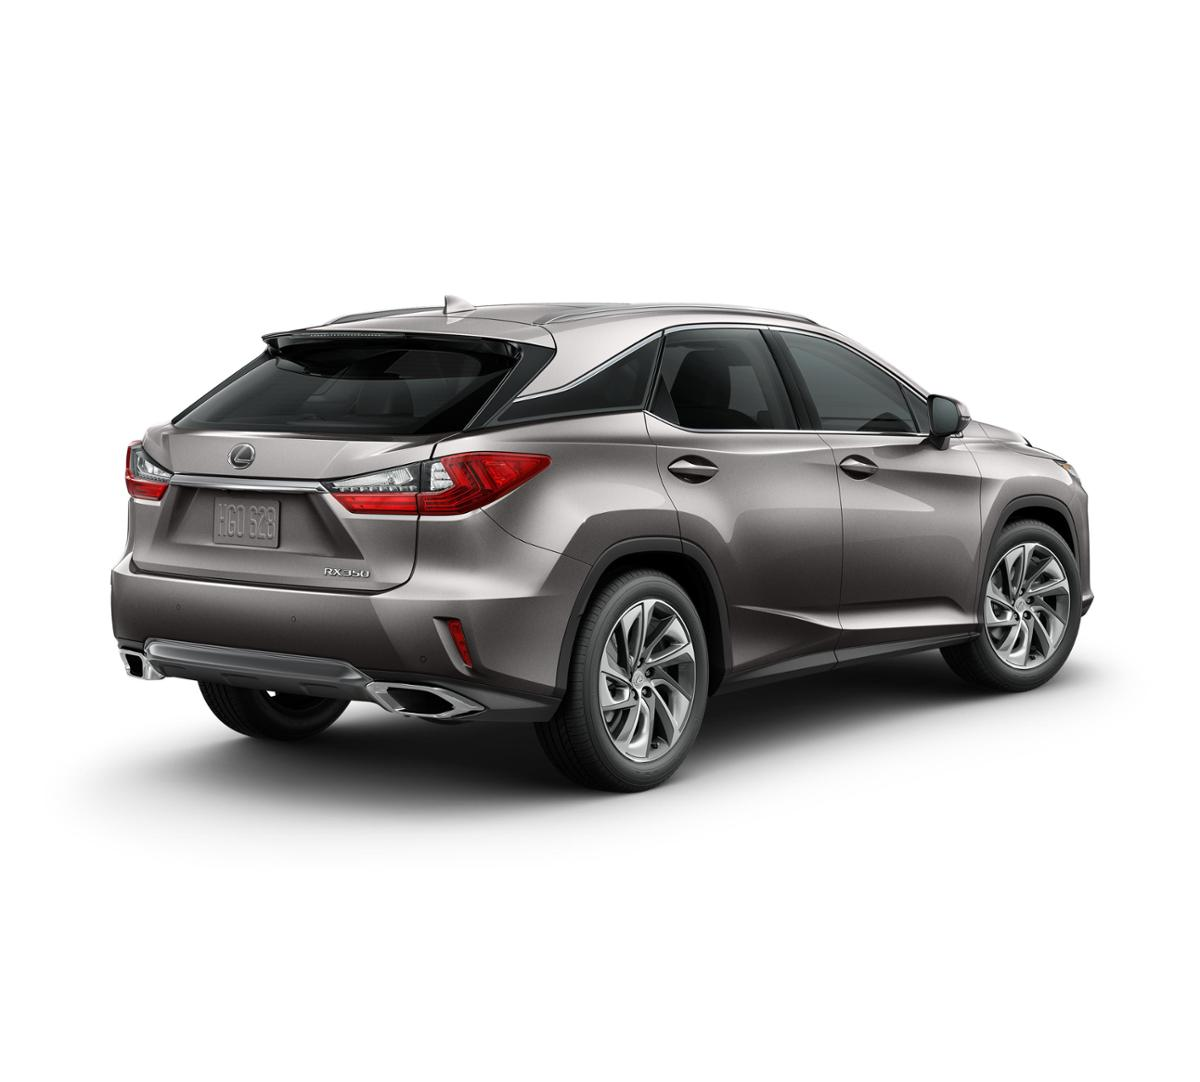 2017 lexus rx 350 details lexus of lansing. Black Bedroom Furniture Sets. Home Design Ideas